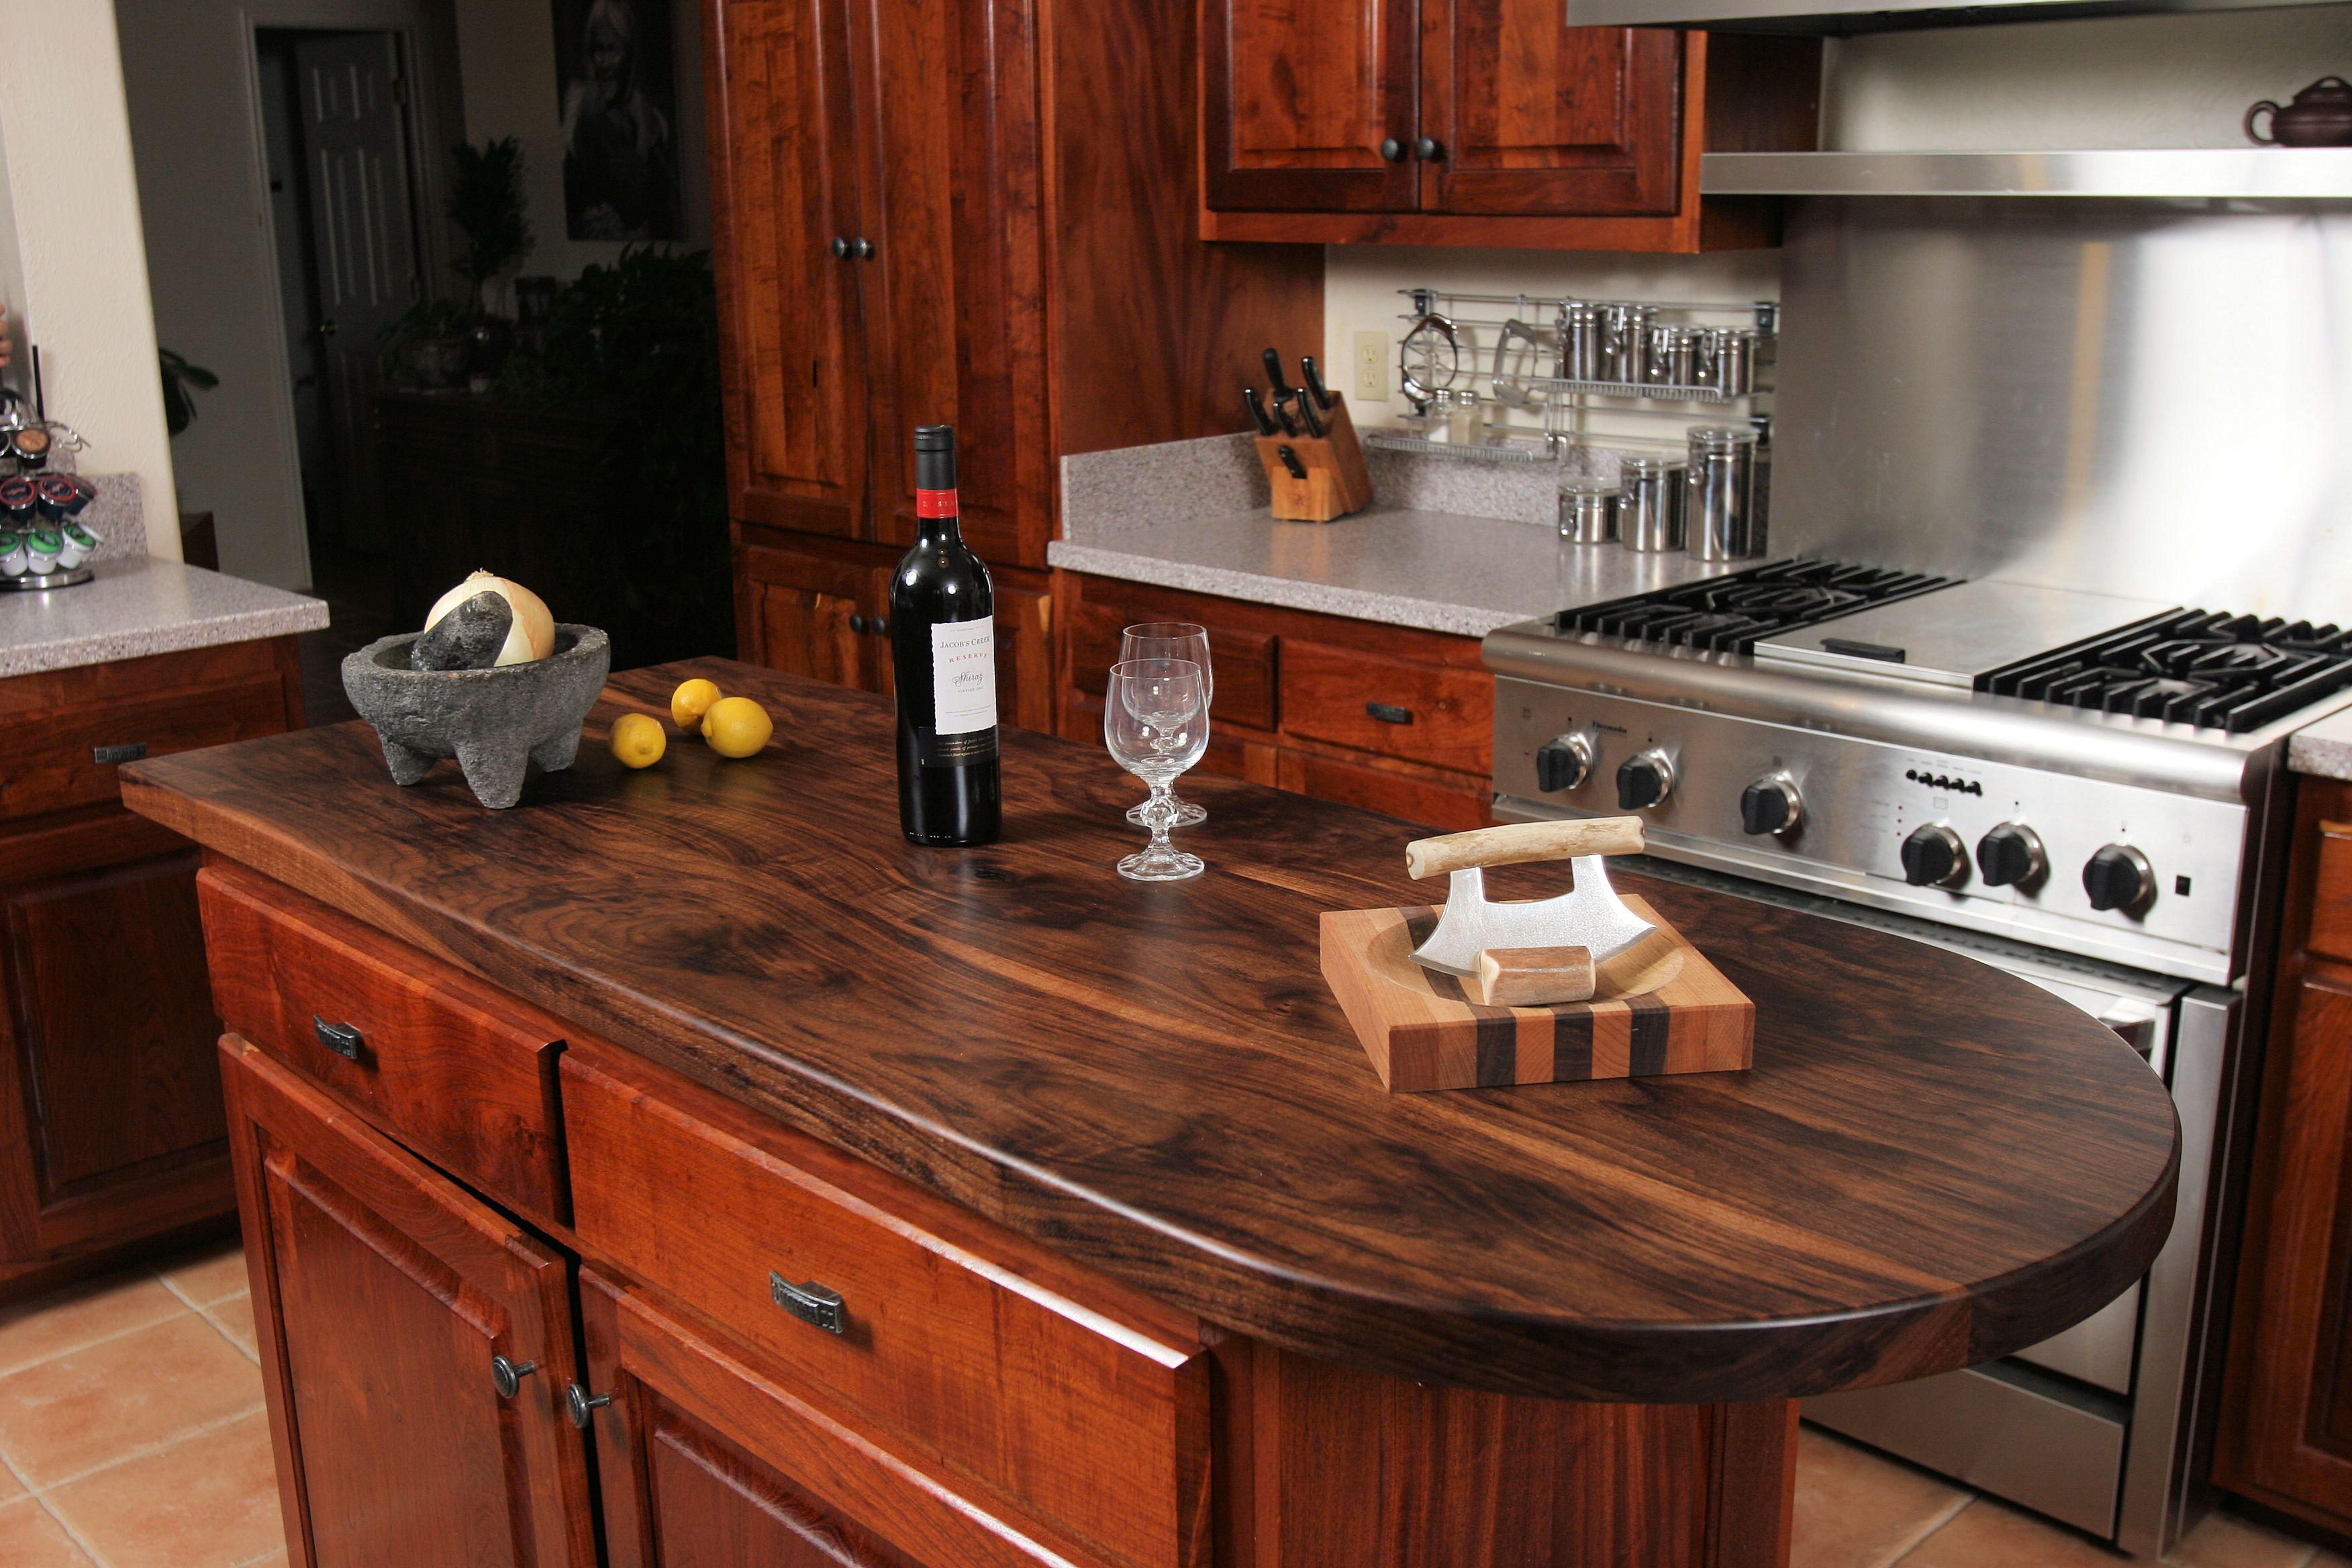 Photo Gallery Of Walnut Wood Countertops, Butcher Block Countertops, Wood  Bar Tops, Wood Table Tops, And Custom Wood Tables Are All Made By DeVos  Custom ...